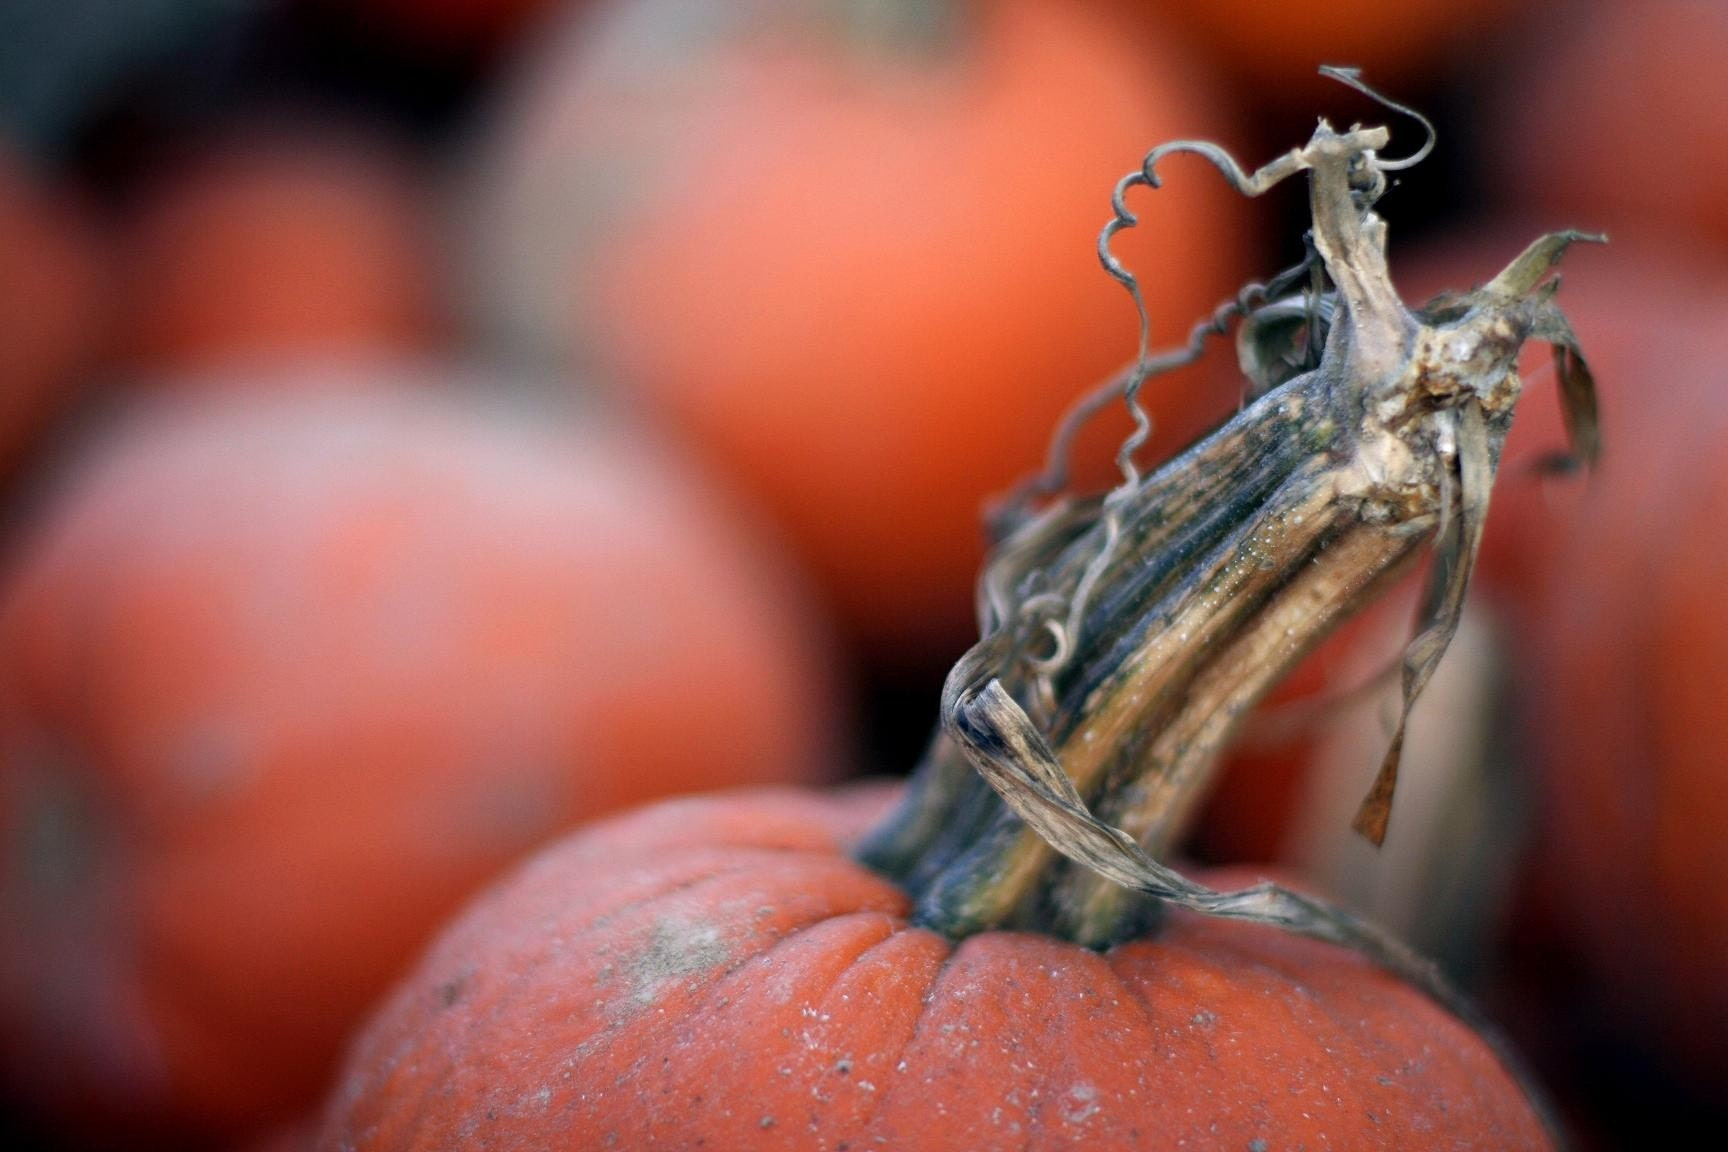 Curly-stemed pumpkin fine art photograph